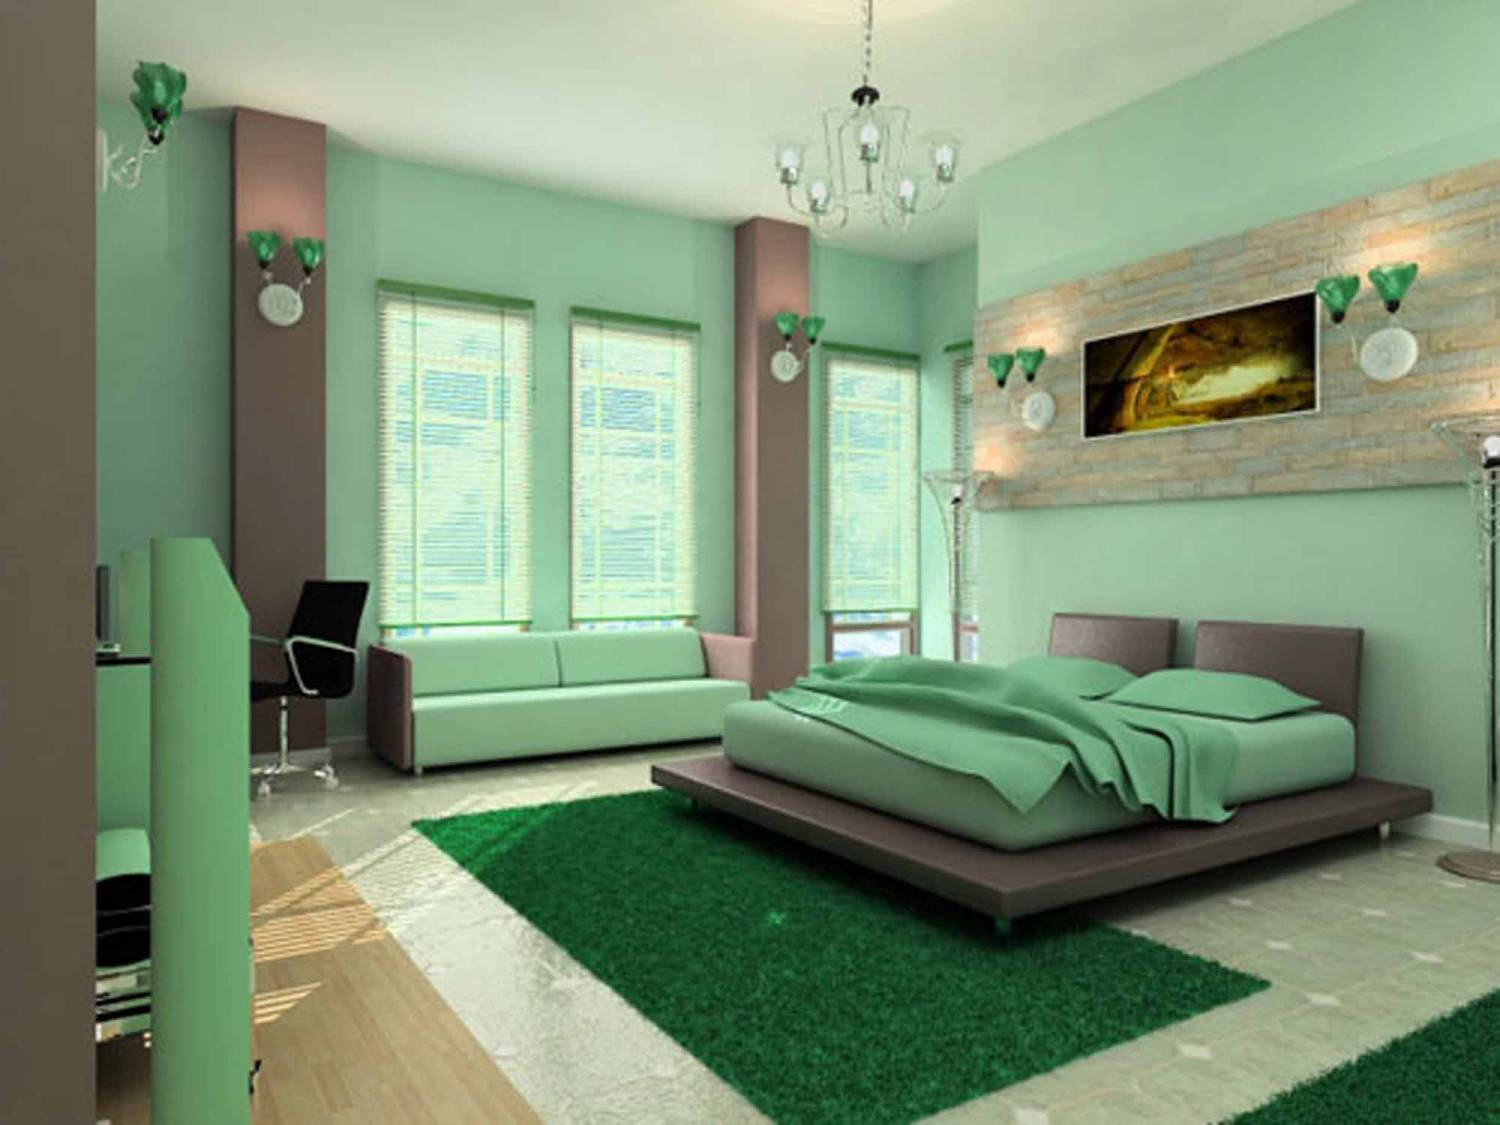 Green bedroom decorating ideas